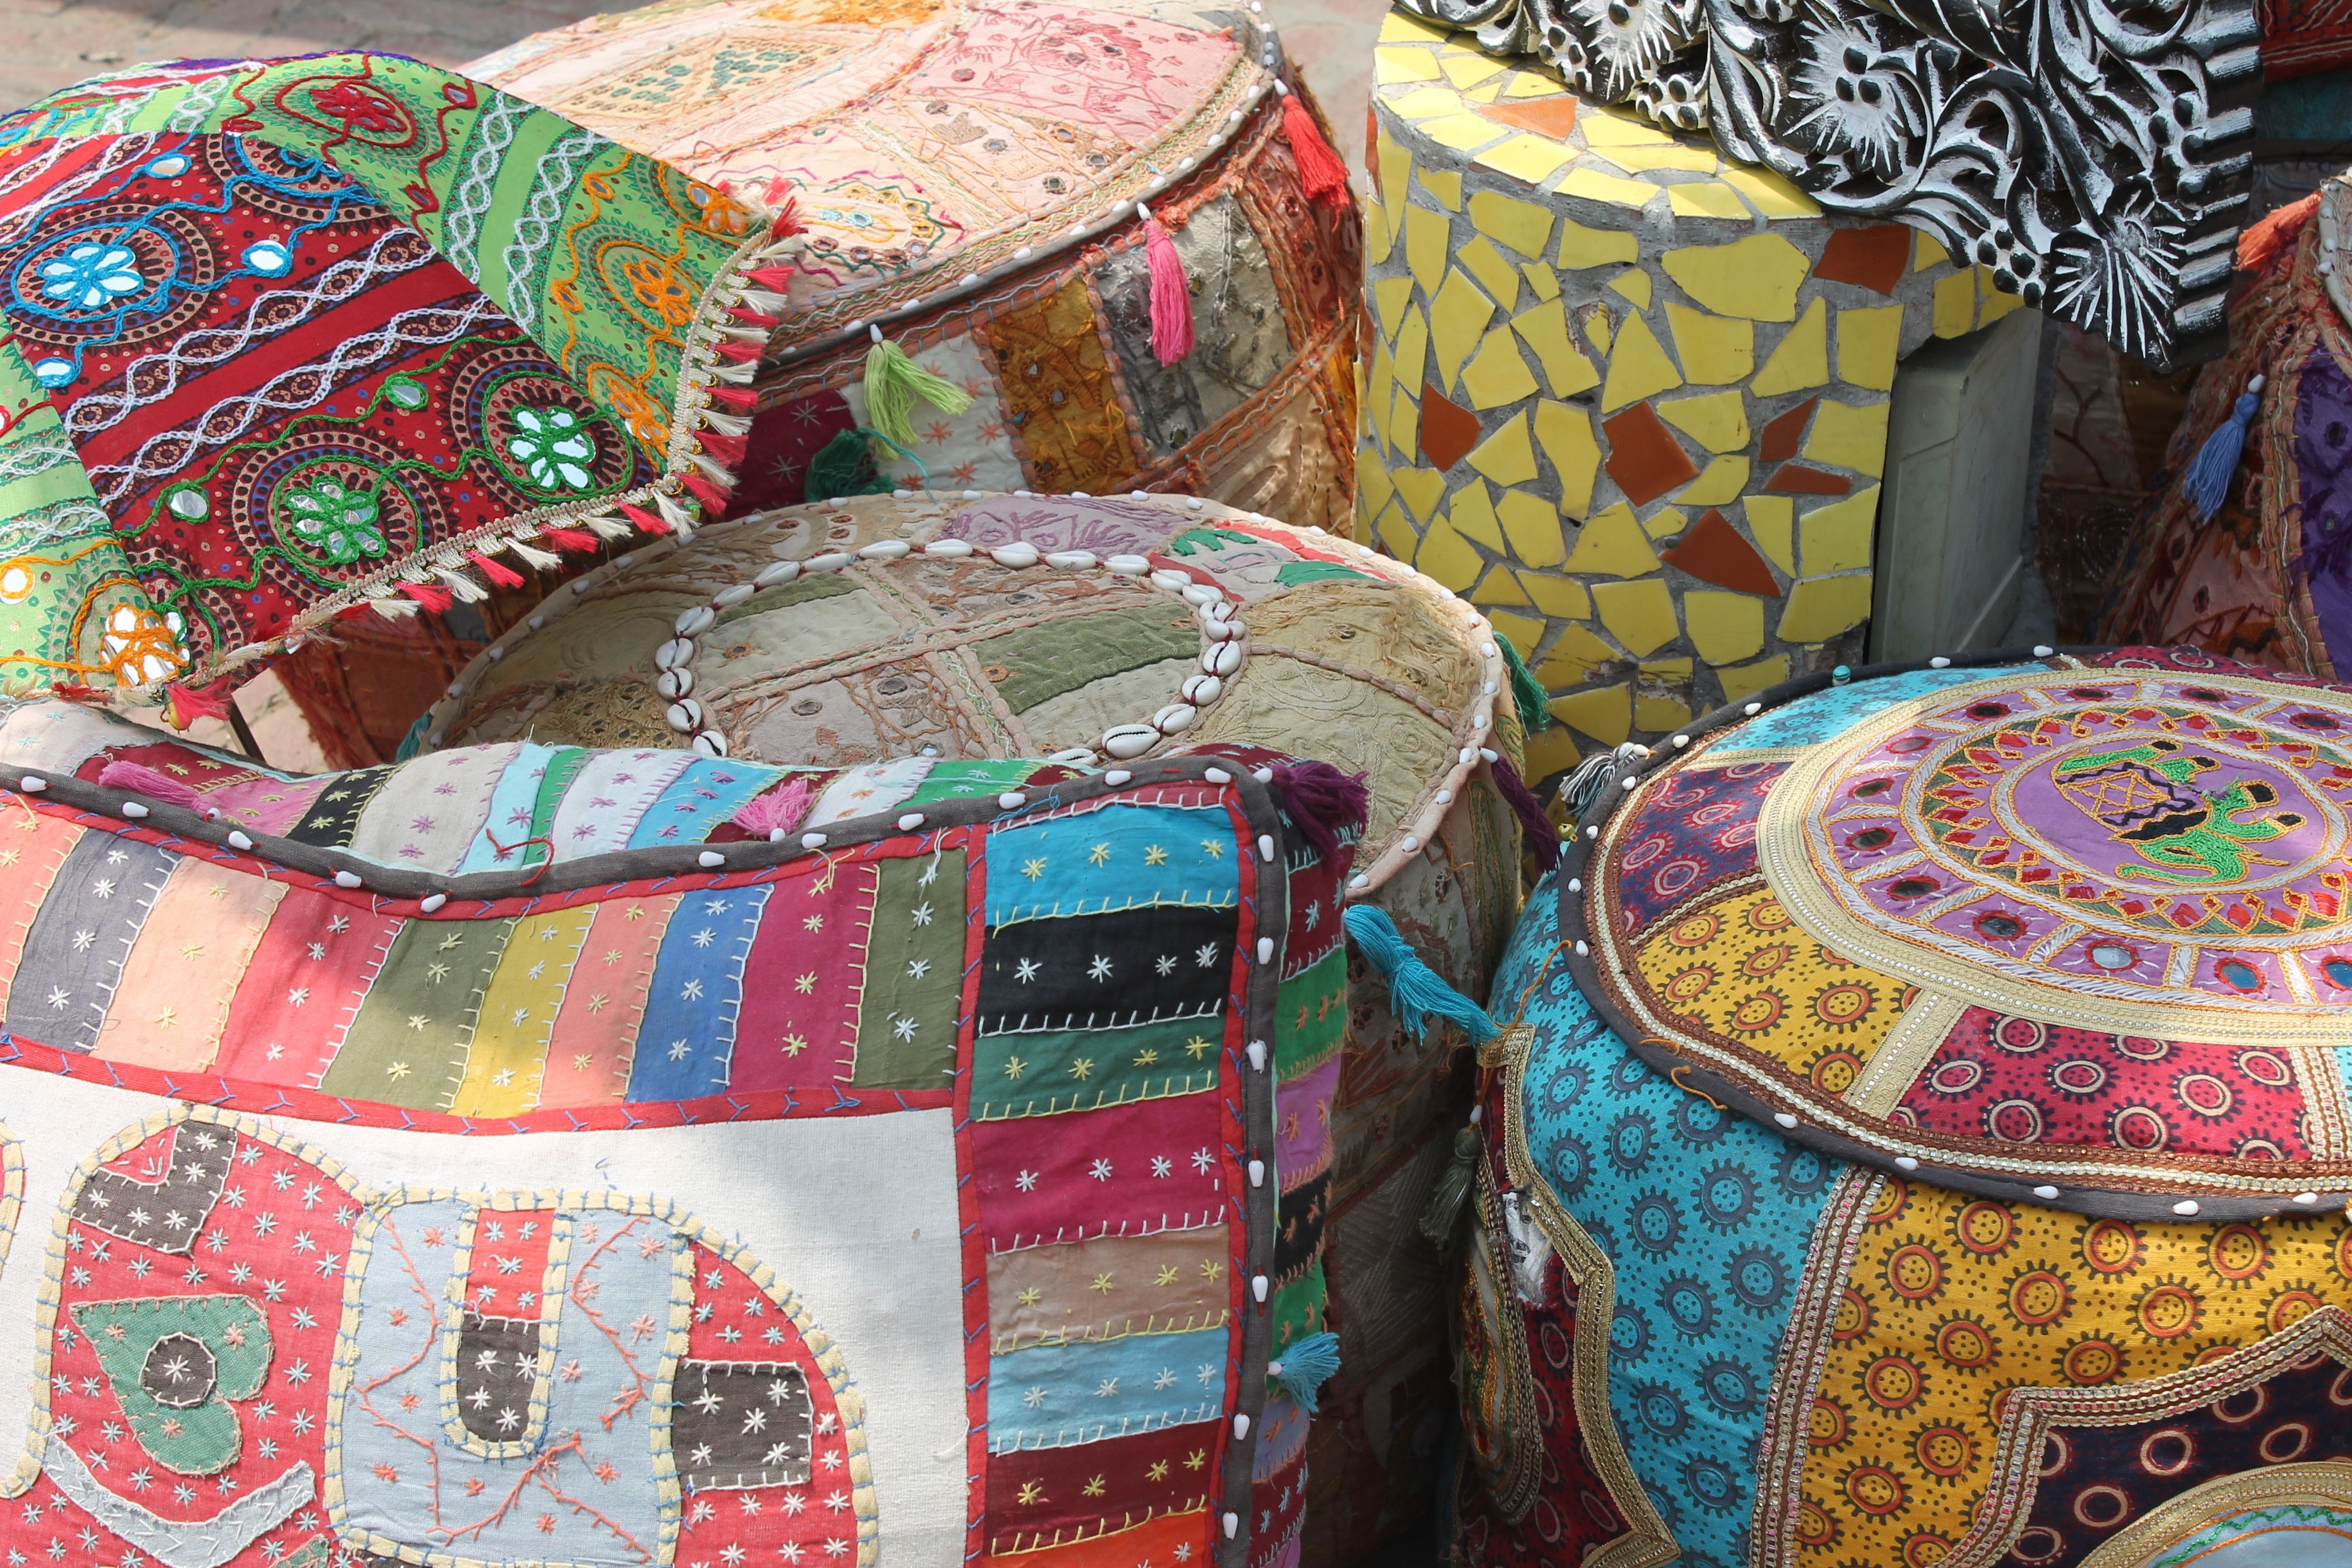 Great Poufs, Cushions, And Umbrellas At Dilli Haat In New Delhi, India.